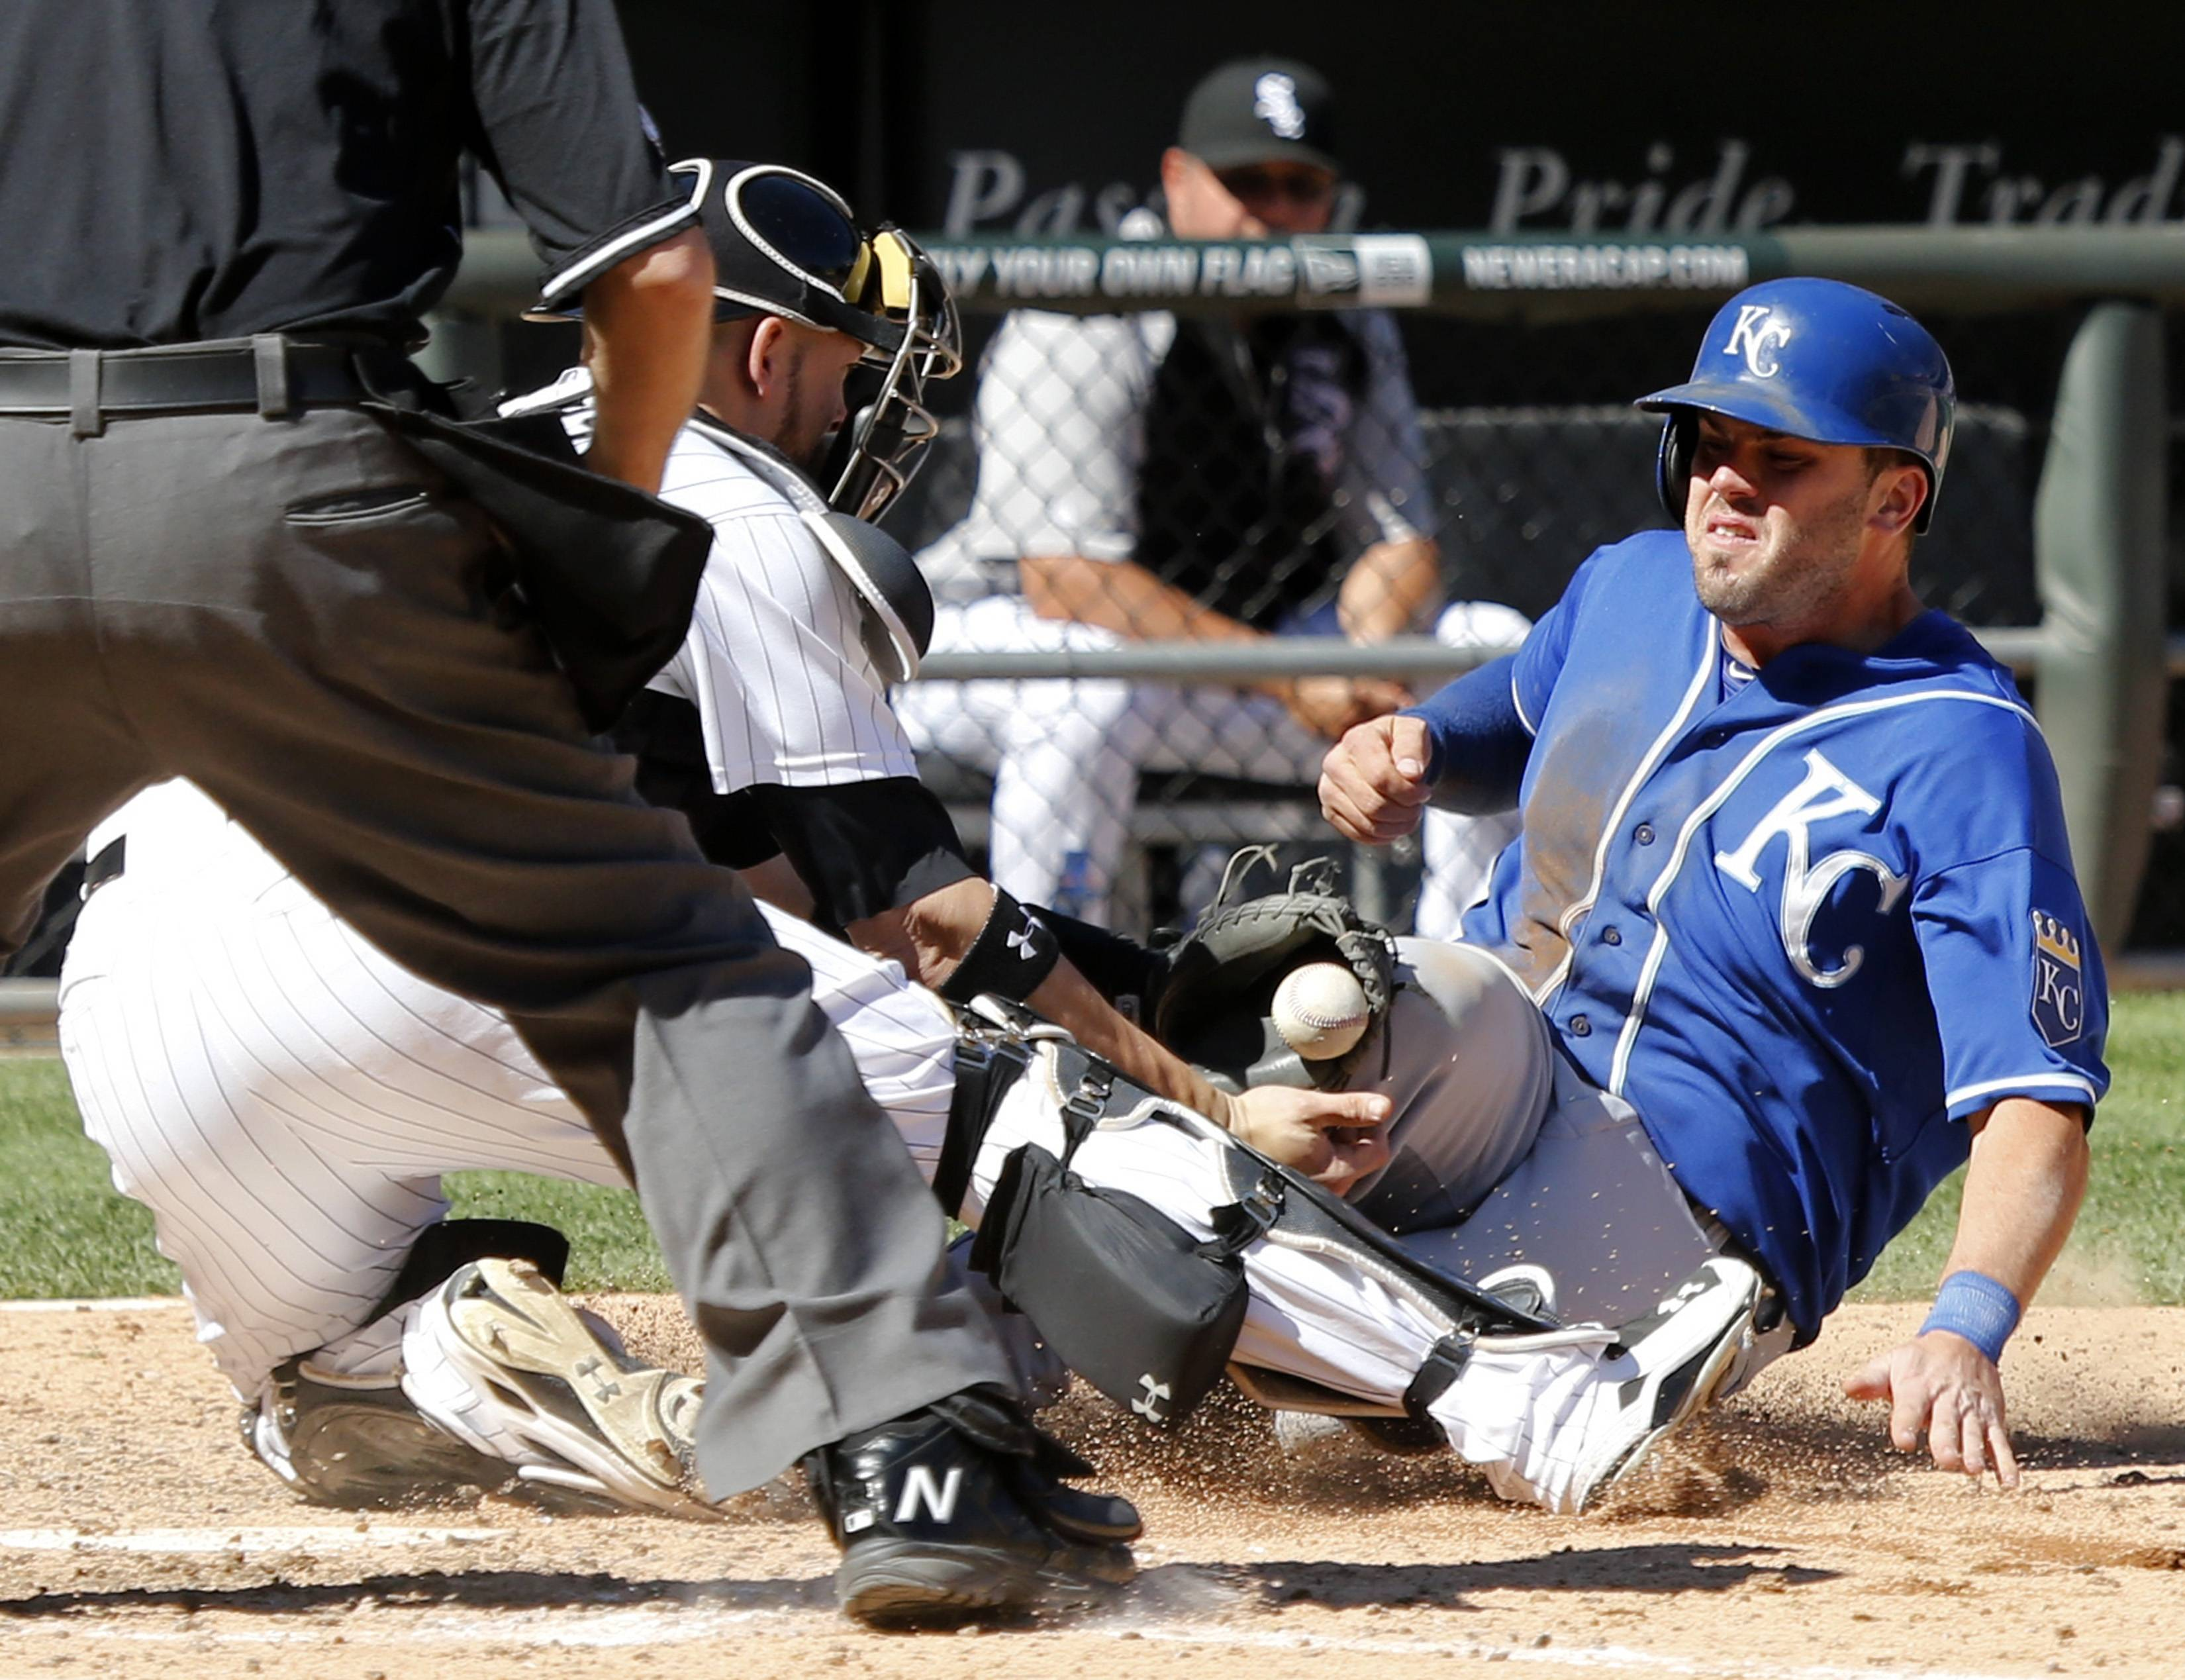 Kansas City Royals' Mike Moustakas knocks the ball out of the glove of Chicago White Sox catcher Tyler Flowers allowing Moustakas to score the winning run during the ninth inning of a baseball game on Wednesday, July 23, 2014, in Chicago.